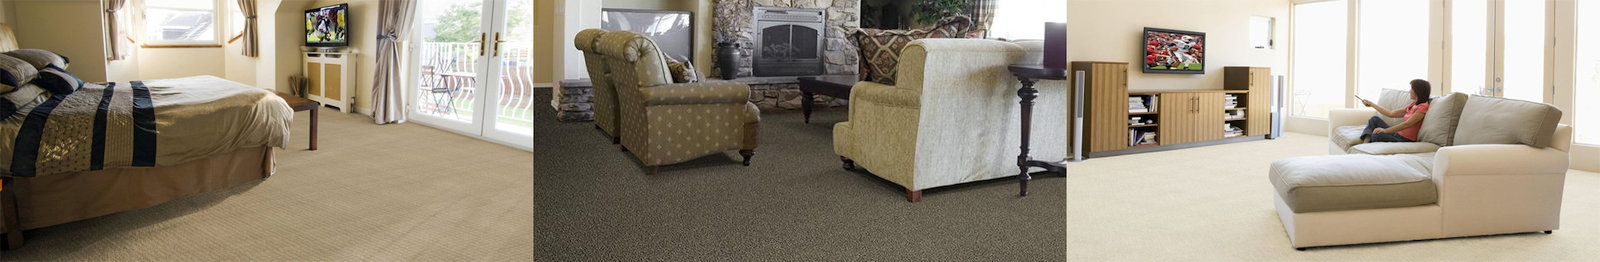 In-stock residential carpet specials!